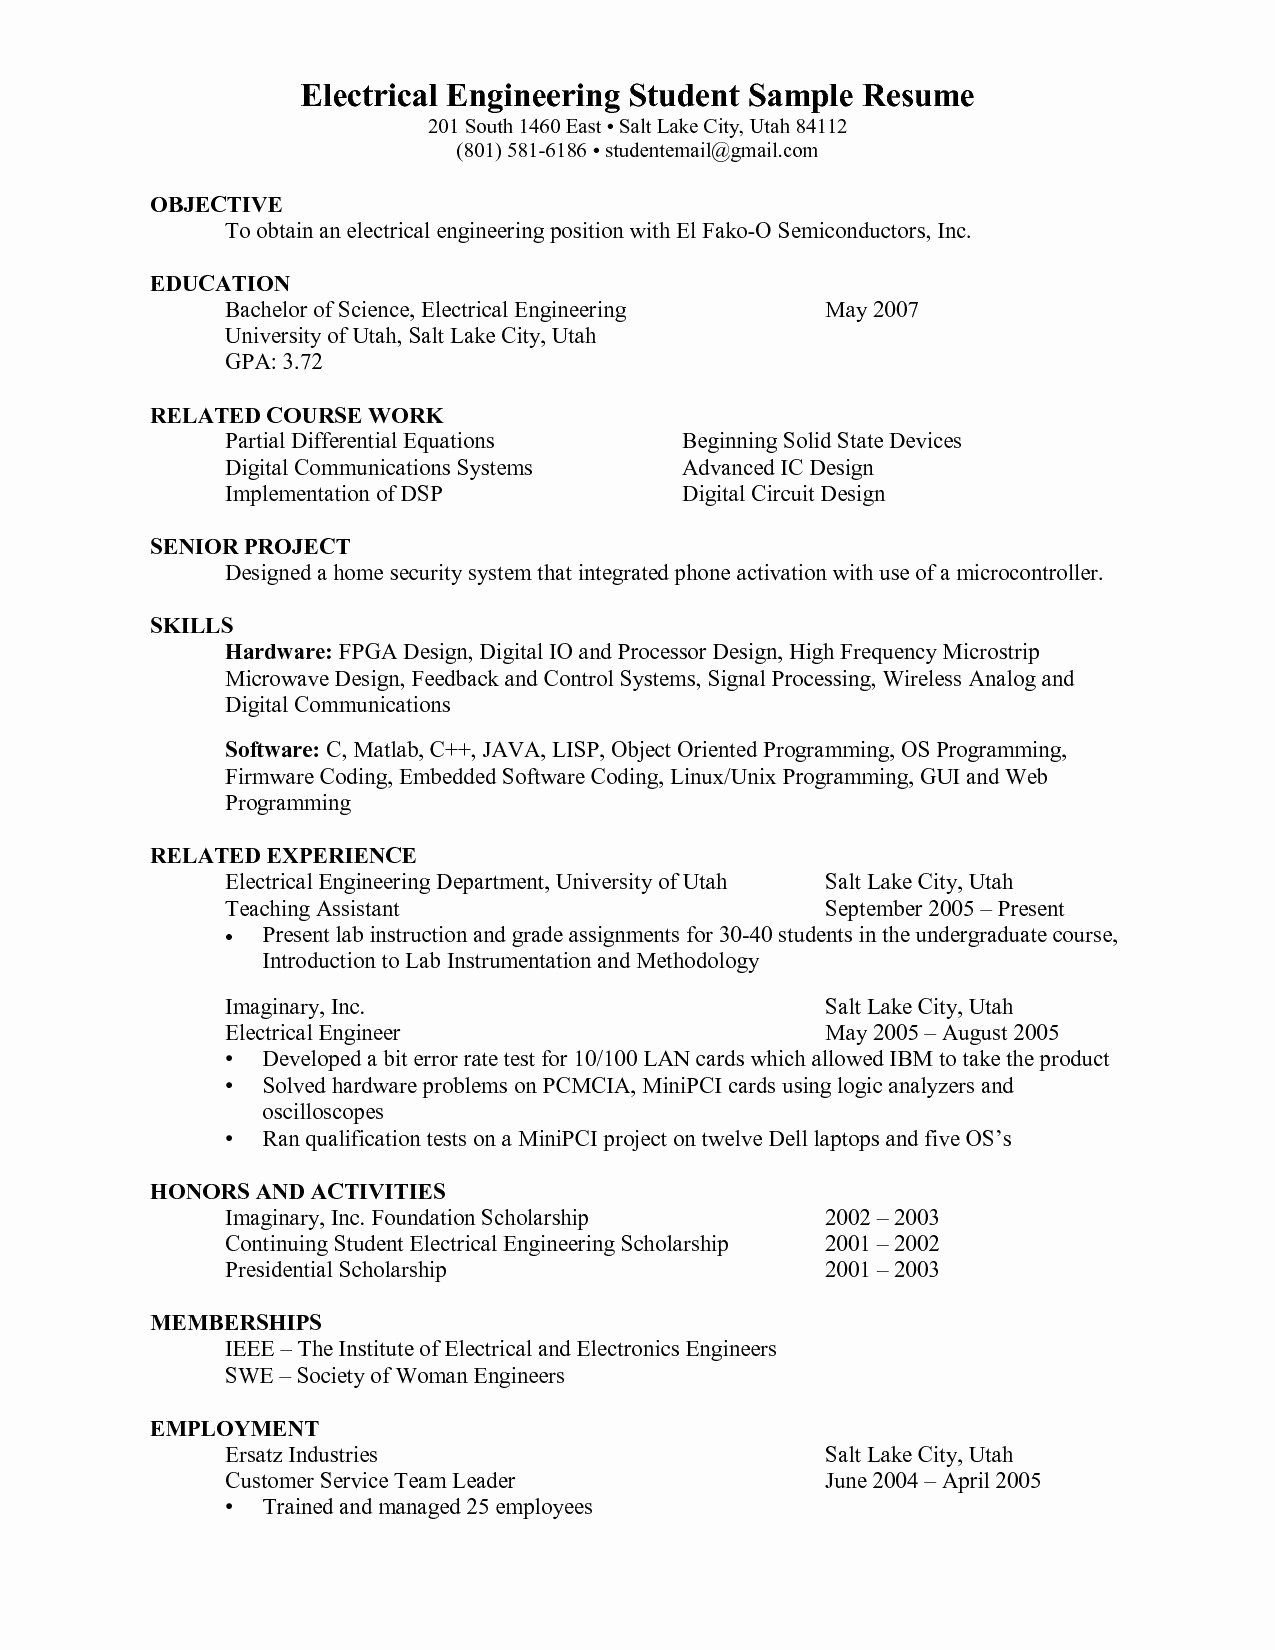 Civil Engineering Internship Resume Awesome 19 Civil Engineering